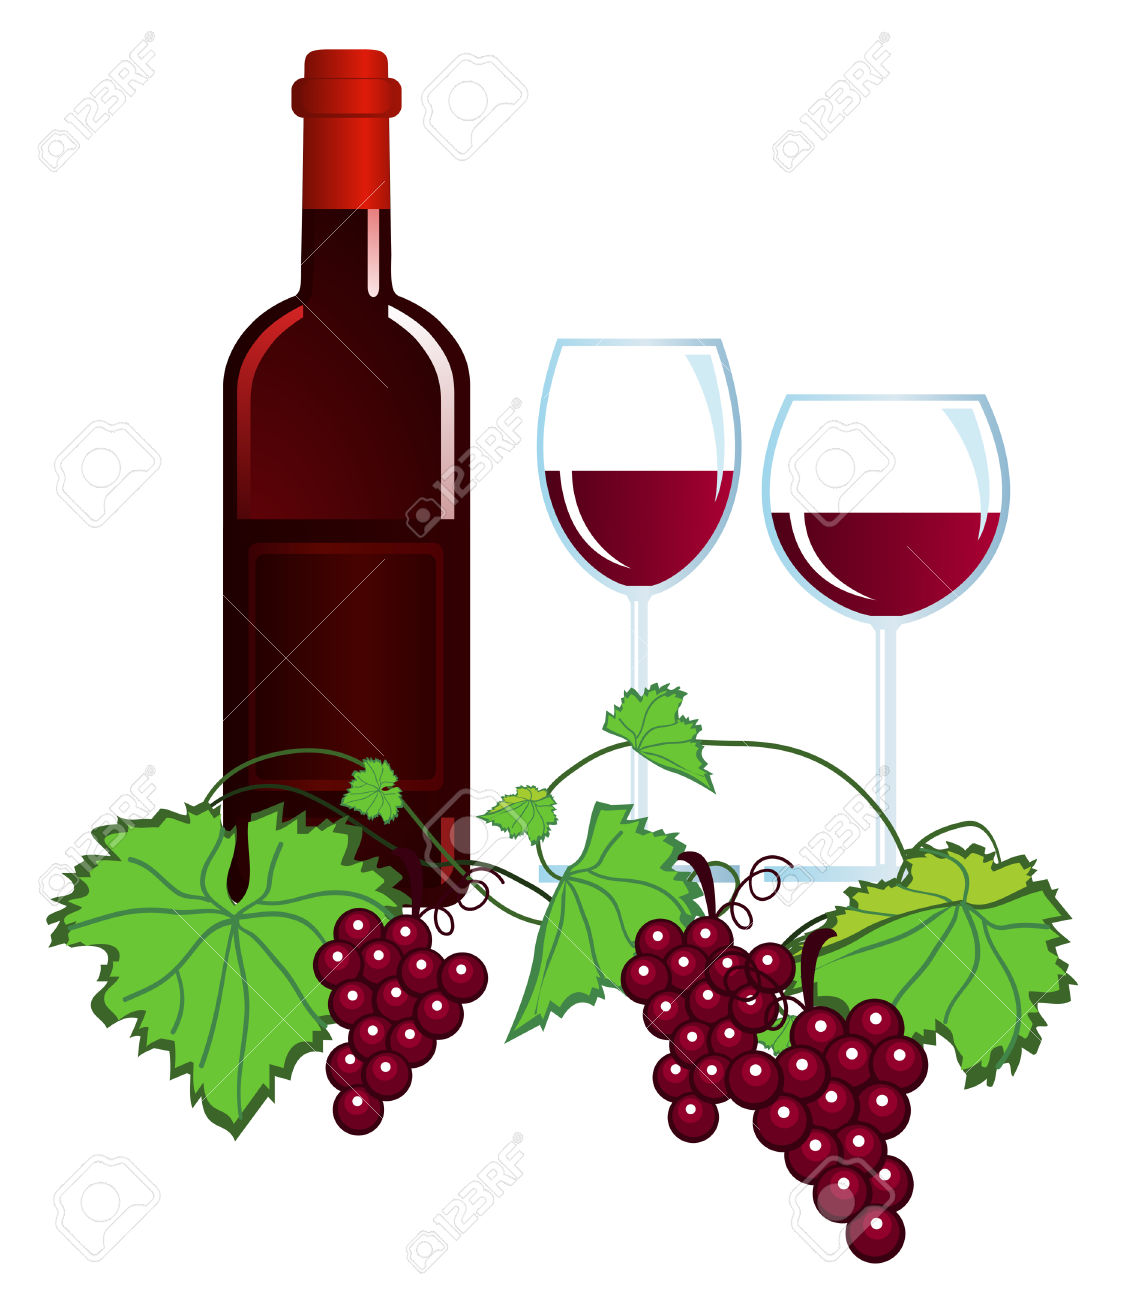 best wine clipart images for personal use 15553 wine clip art black and white wine clip art pictures